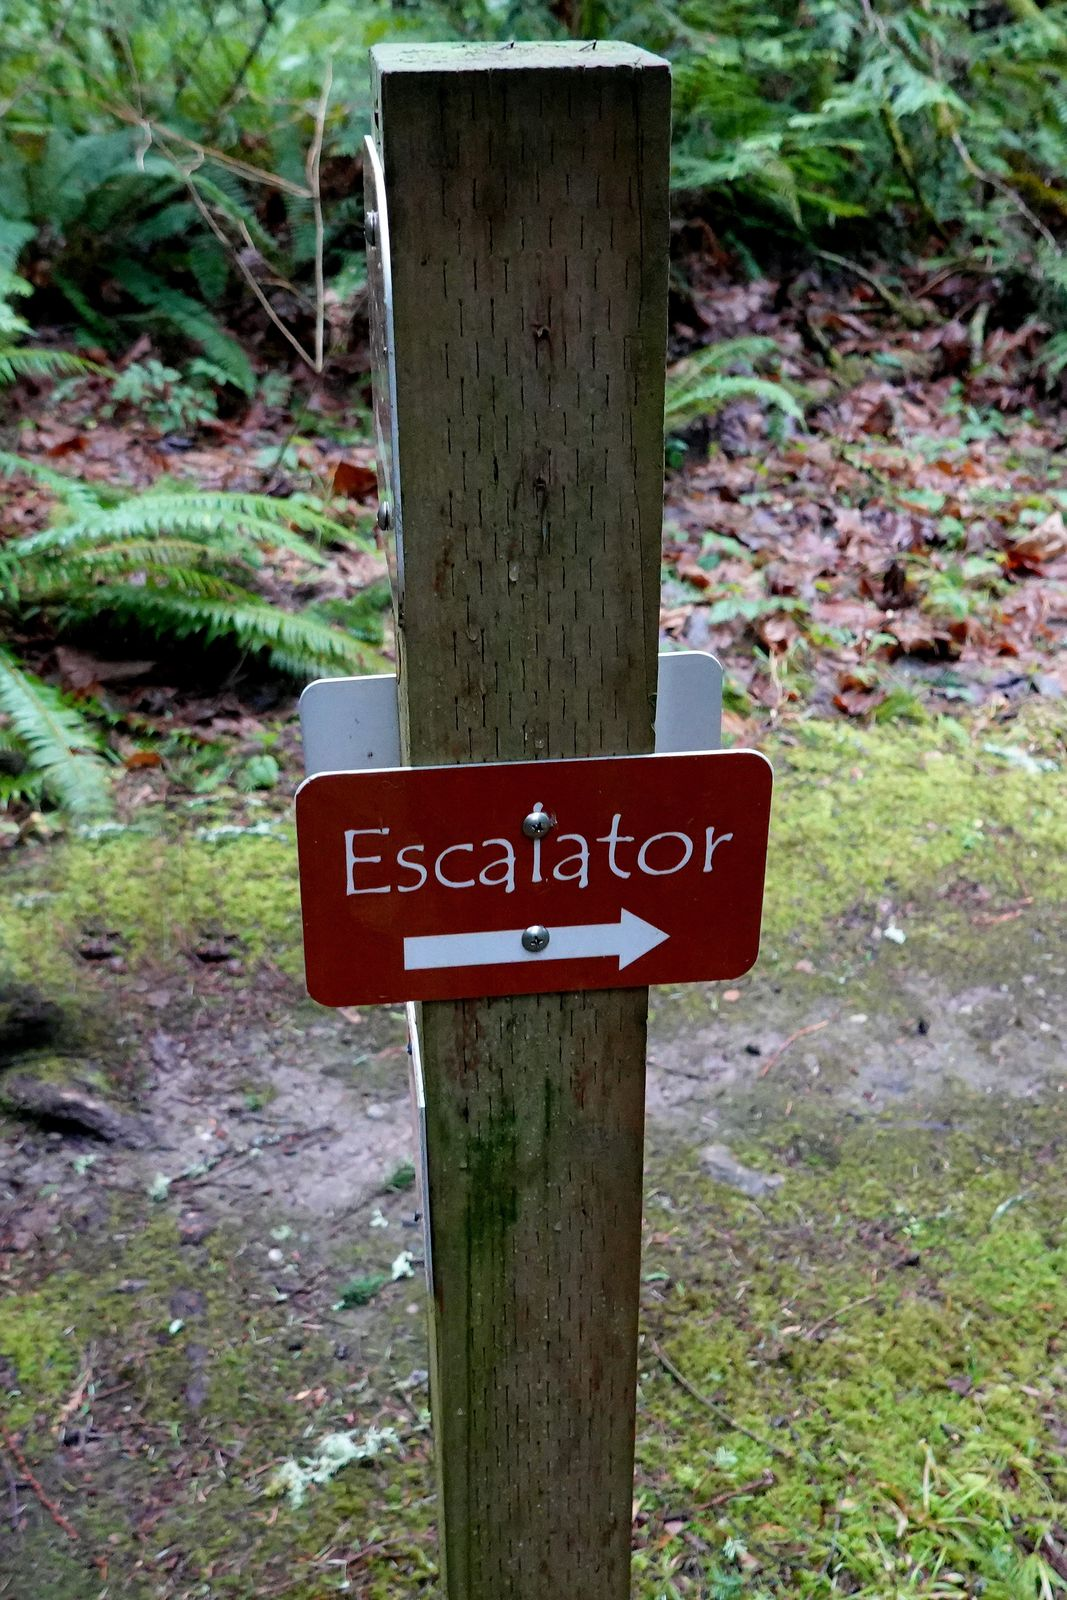 The small hills were not a problem – they have escalators